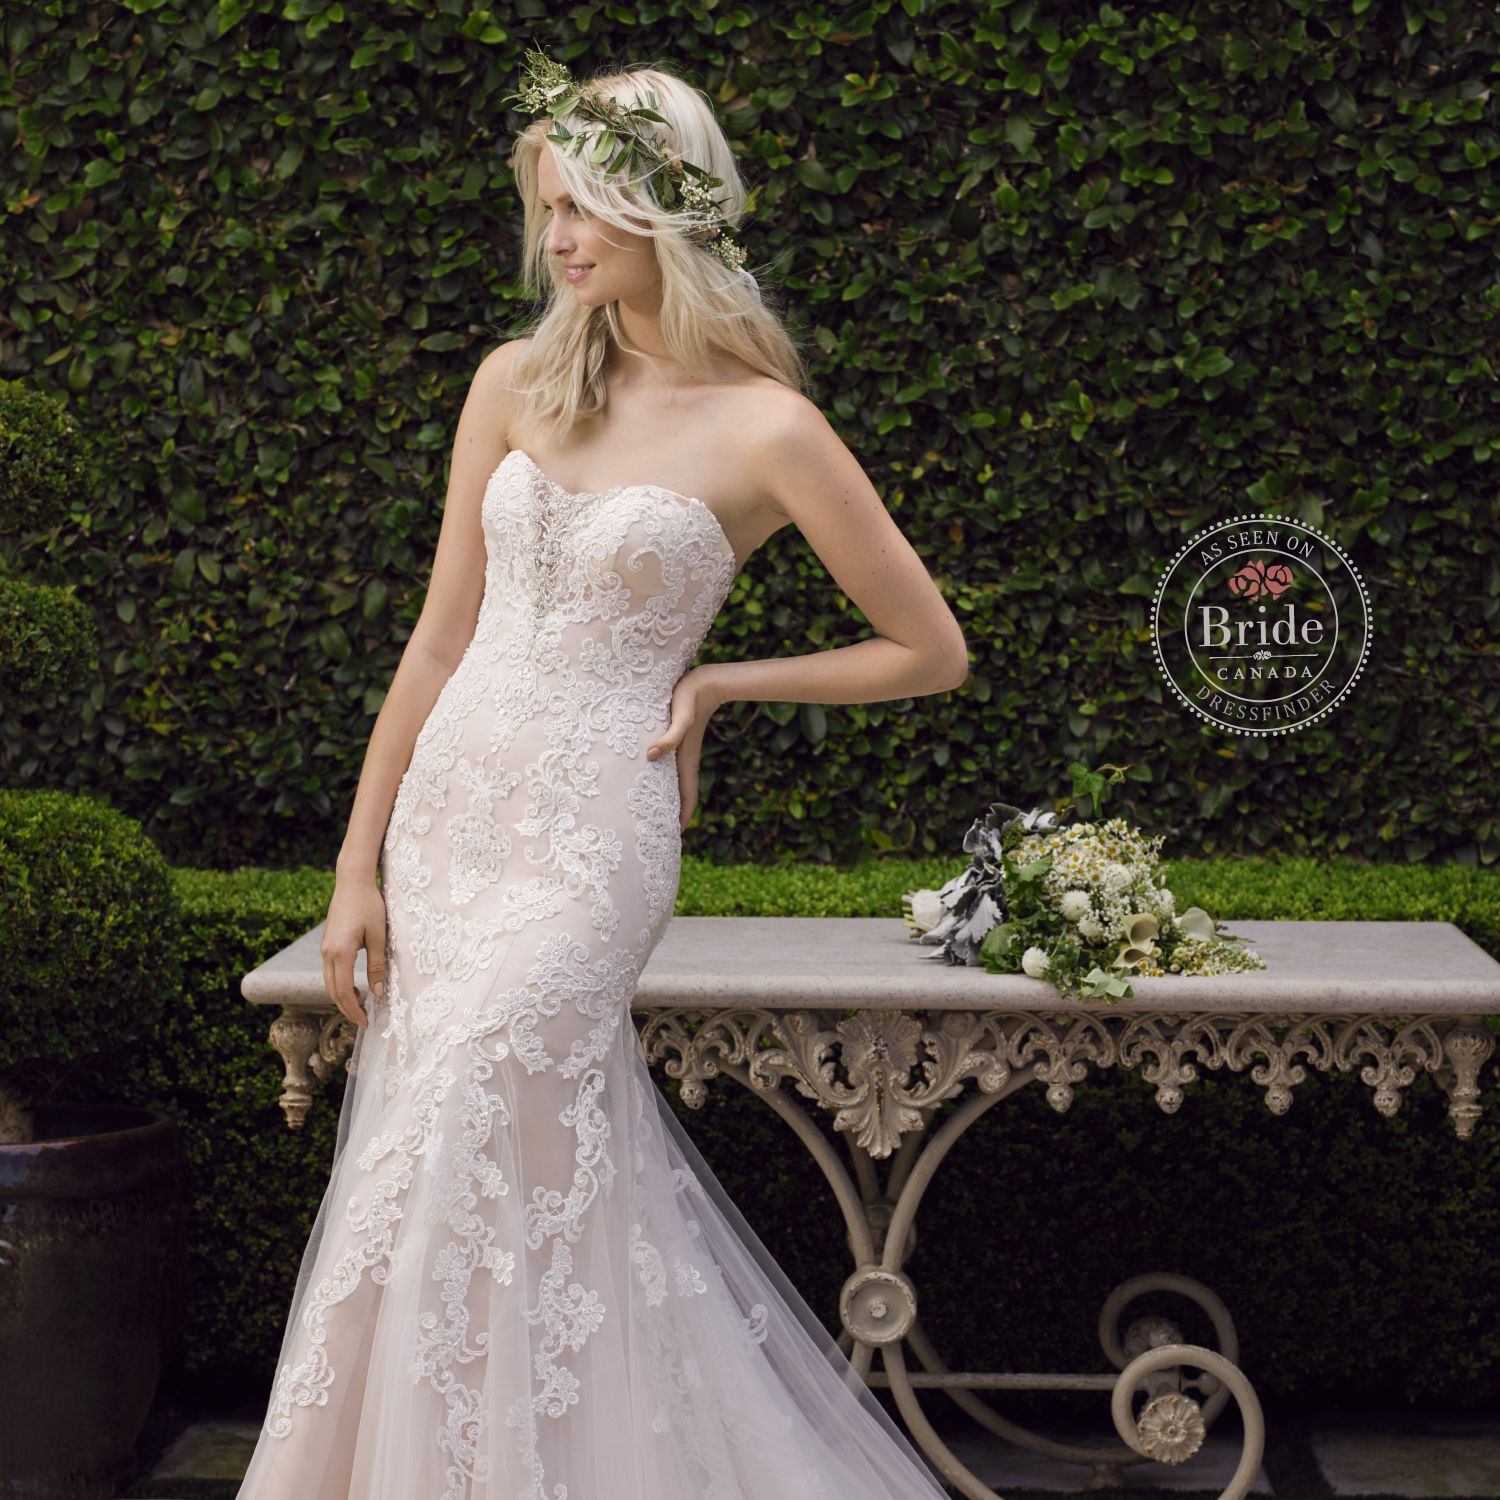 Lotus by casablanca bridal as seen on dressfinder brides casablanca 2242 lotus casablanca bridal renaissance bridals york pa prom bridal gowns homecoming mother of the bride bridesmaids ombrellifo Gallery